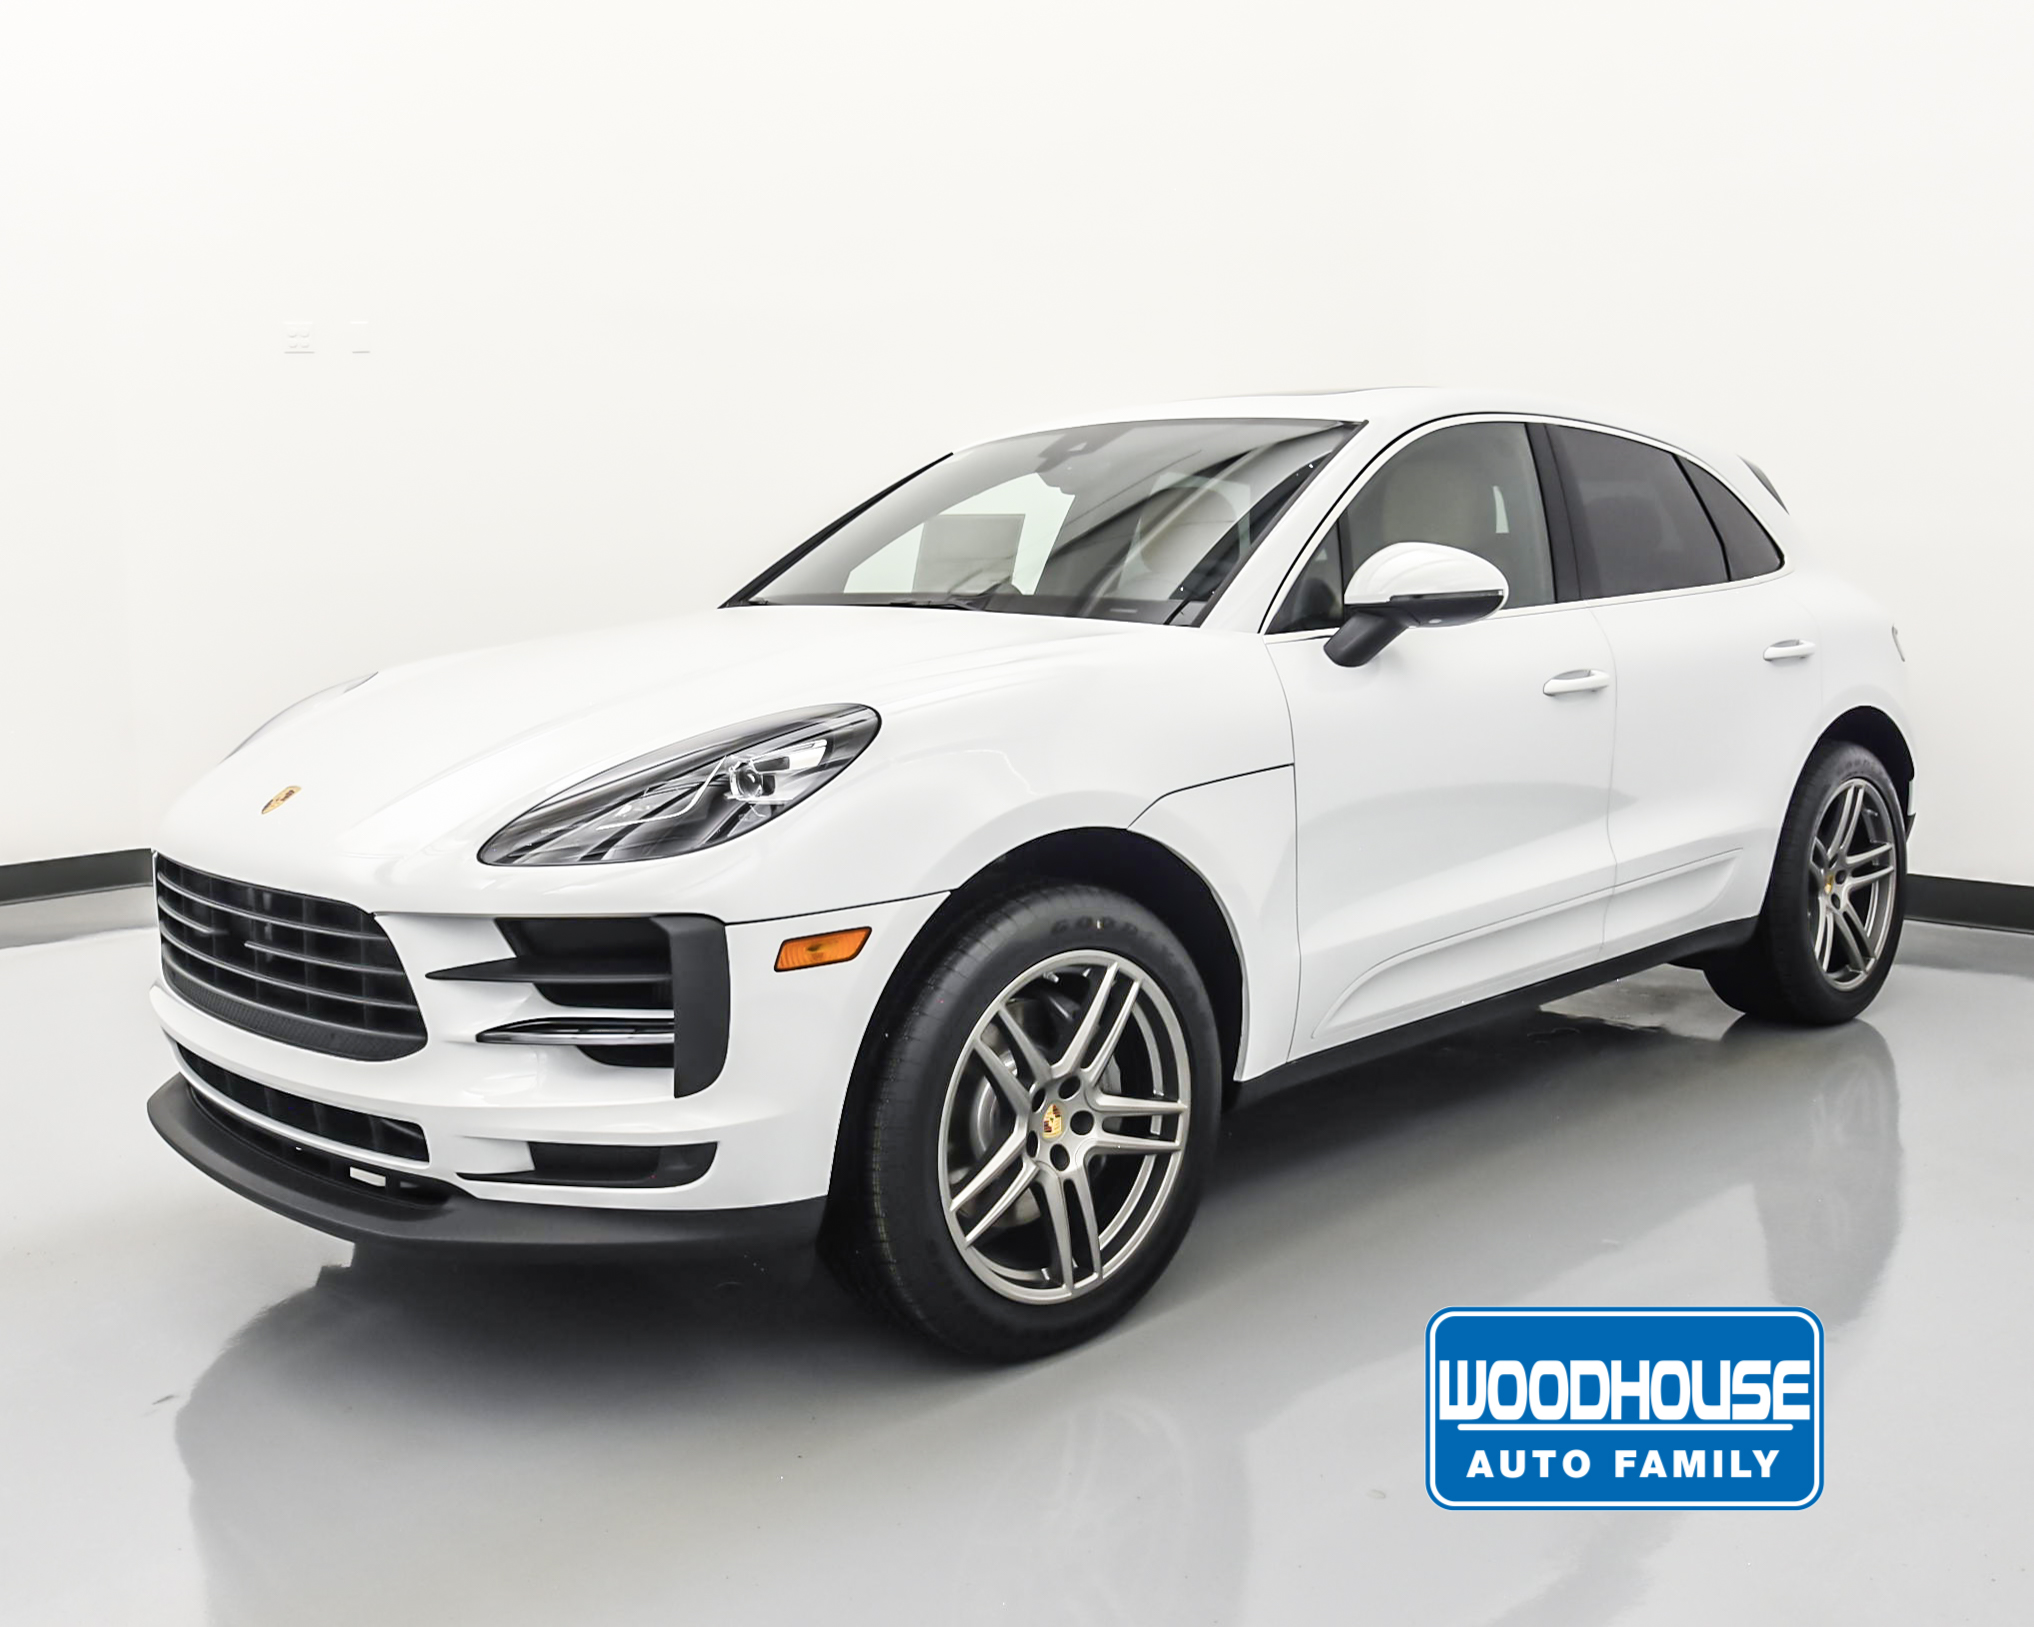 Woodhouse New 2020 Porsche Macan For Sale Porsche Omaha